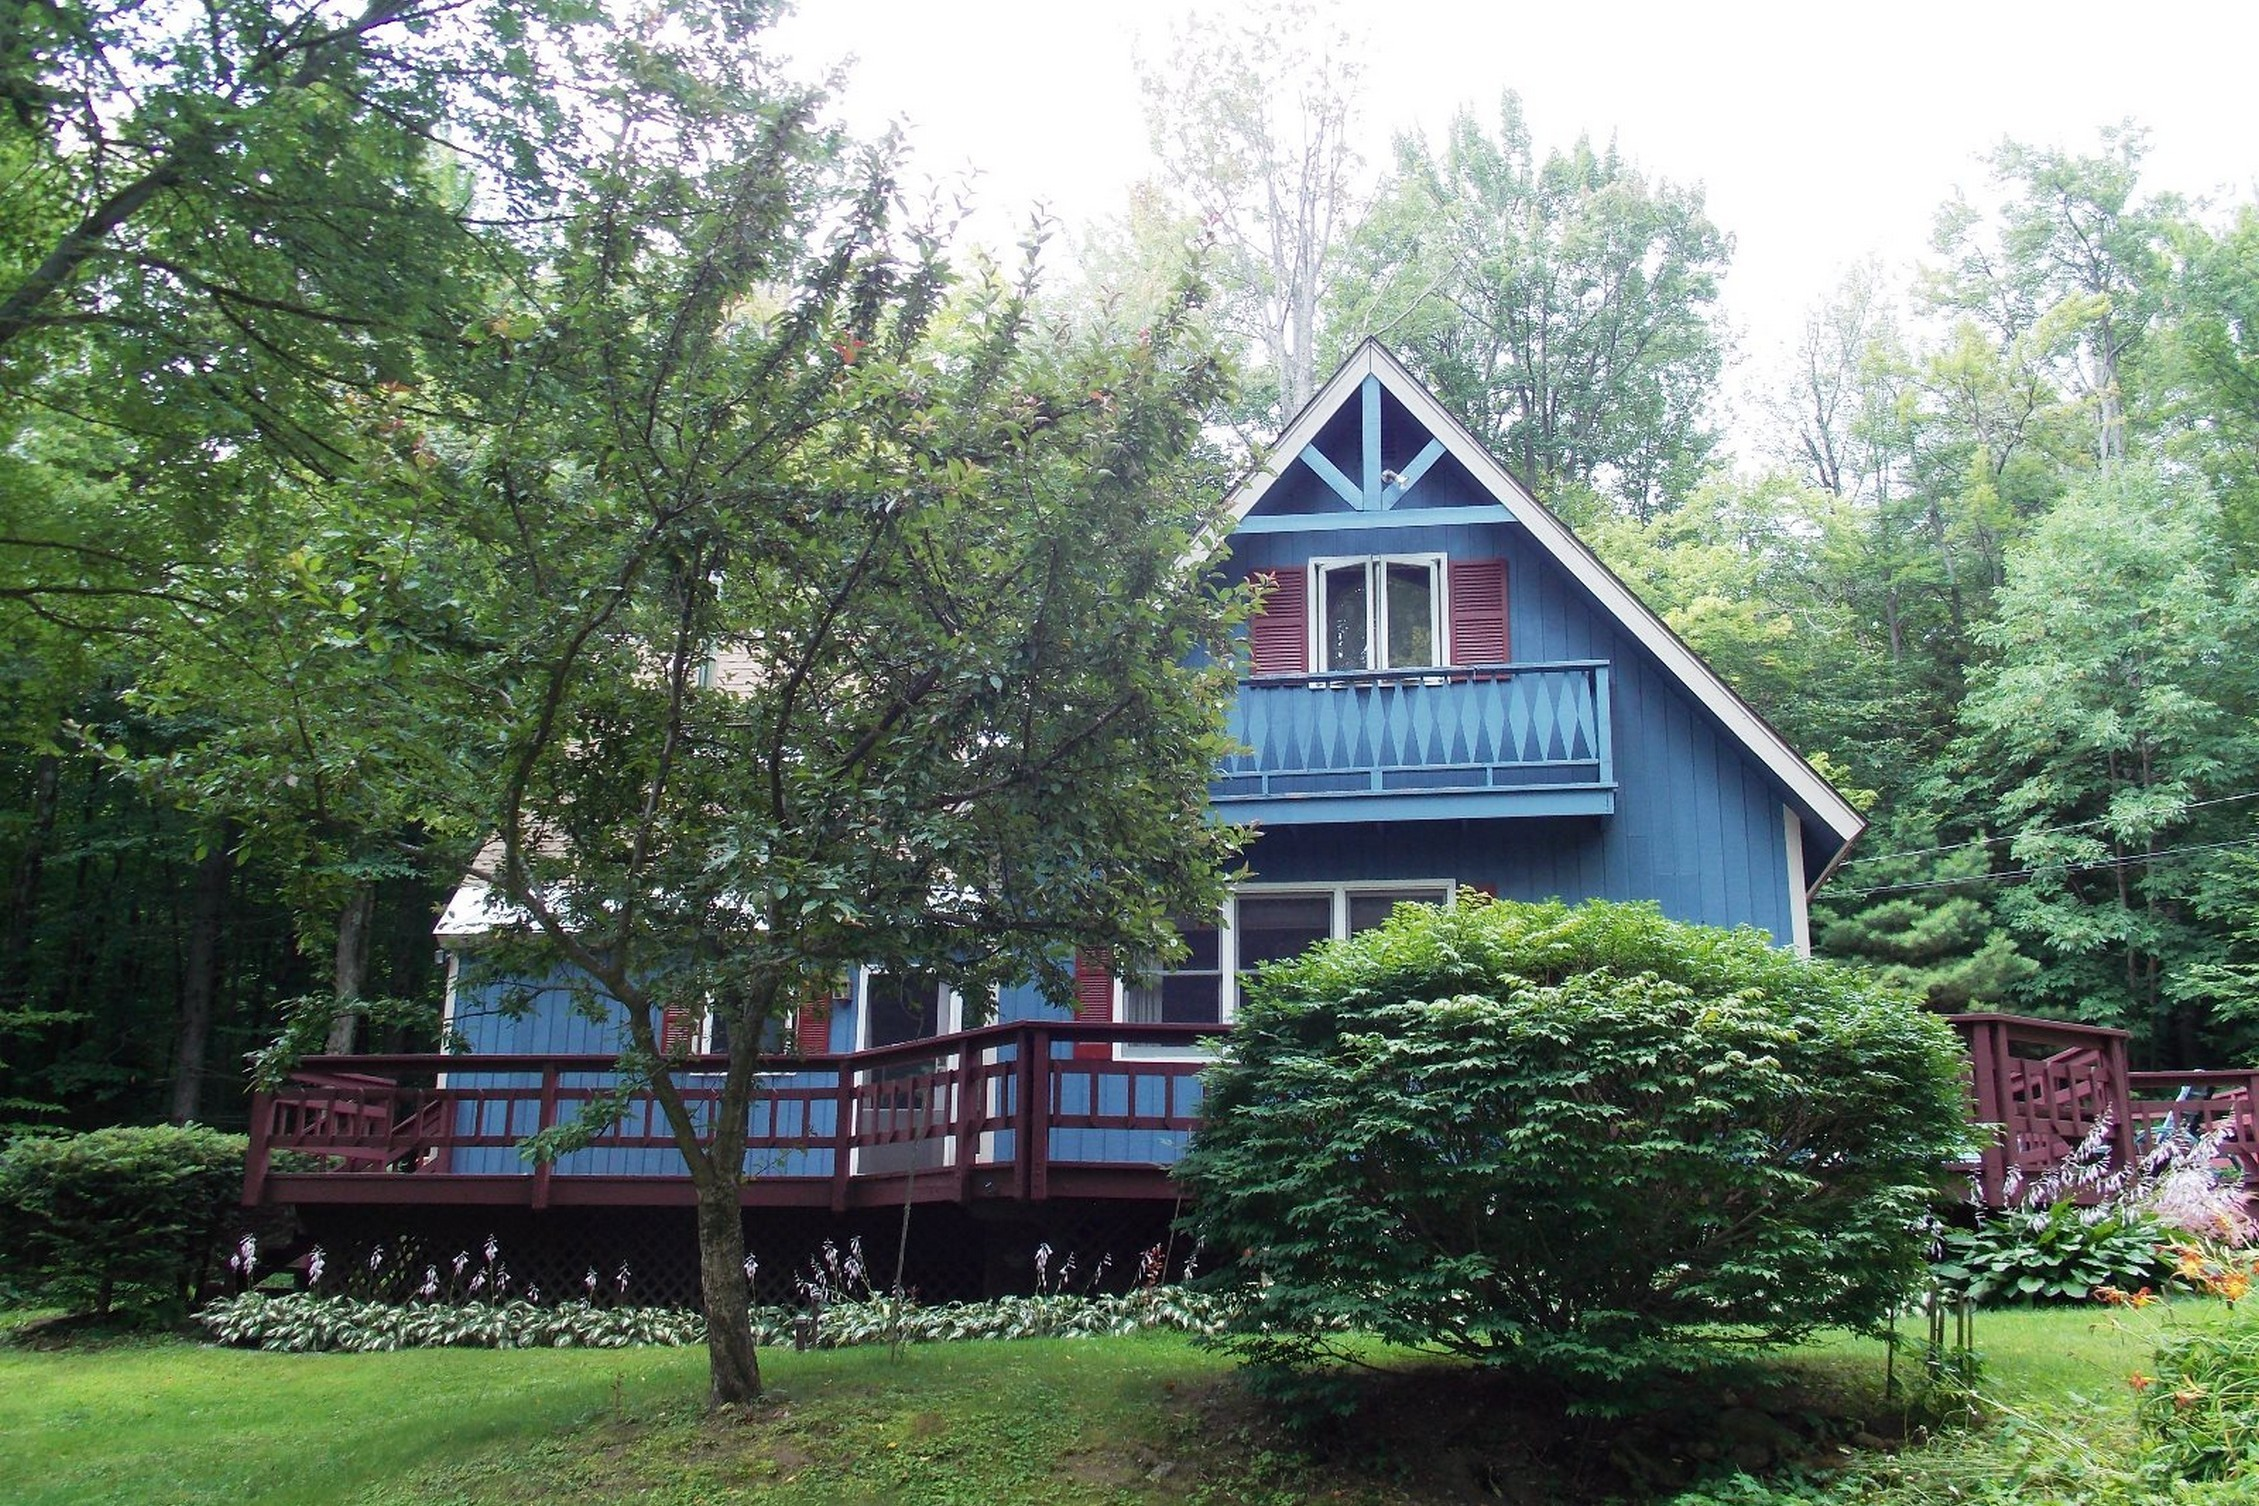 Single Family Home for Sale at 16 Golden Triangle, Winhall Winhall, Vermont, 05340 United States